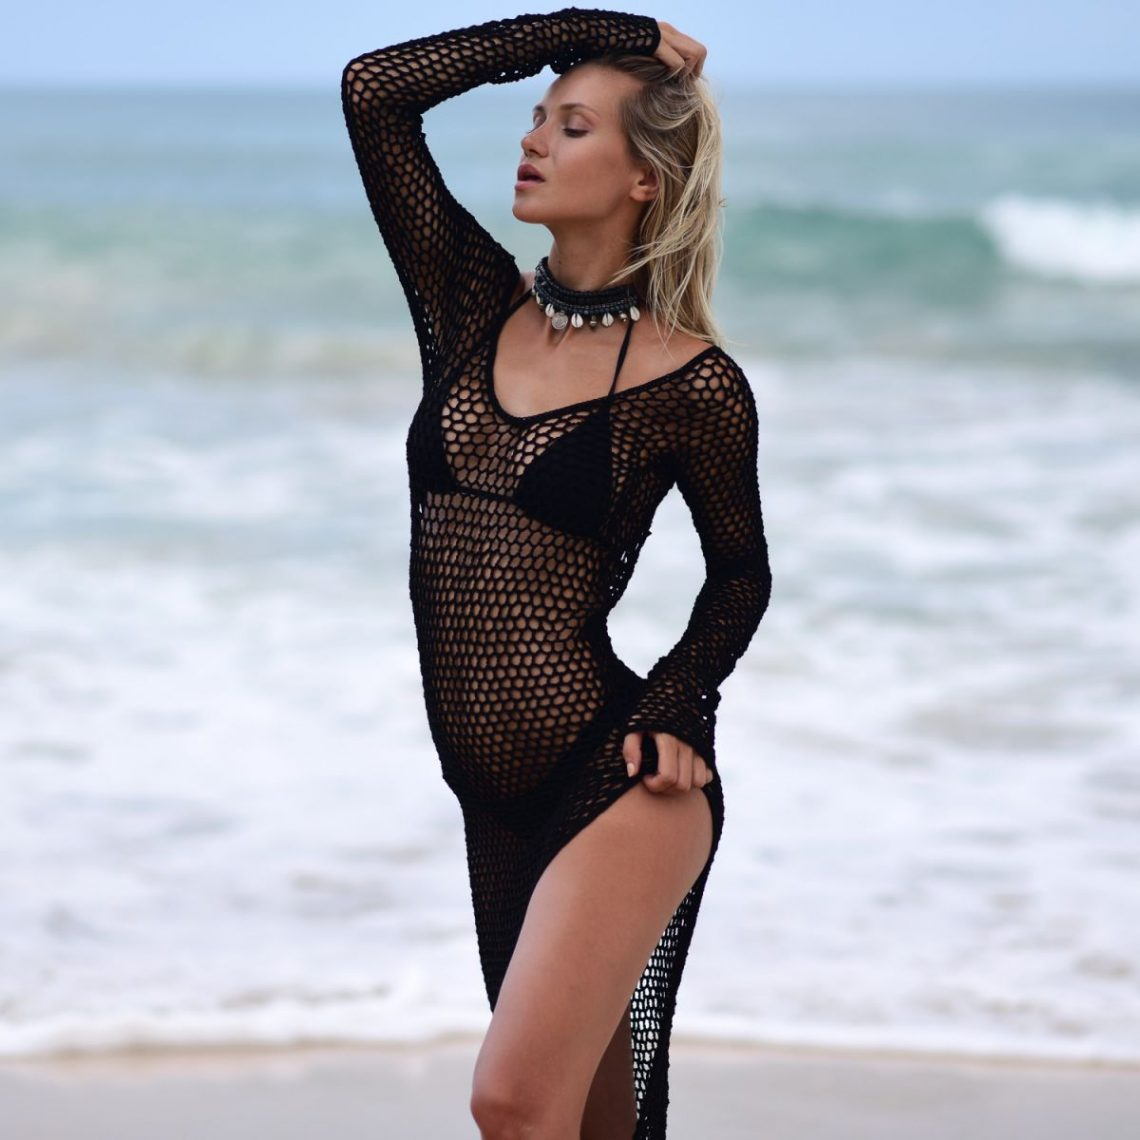 Balistarz-model-Sylvia-Koronkiewicz-standing-by-the-sea-in-her-sexy-beach-suit